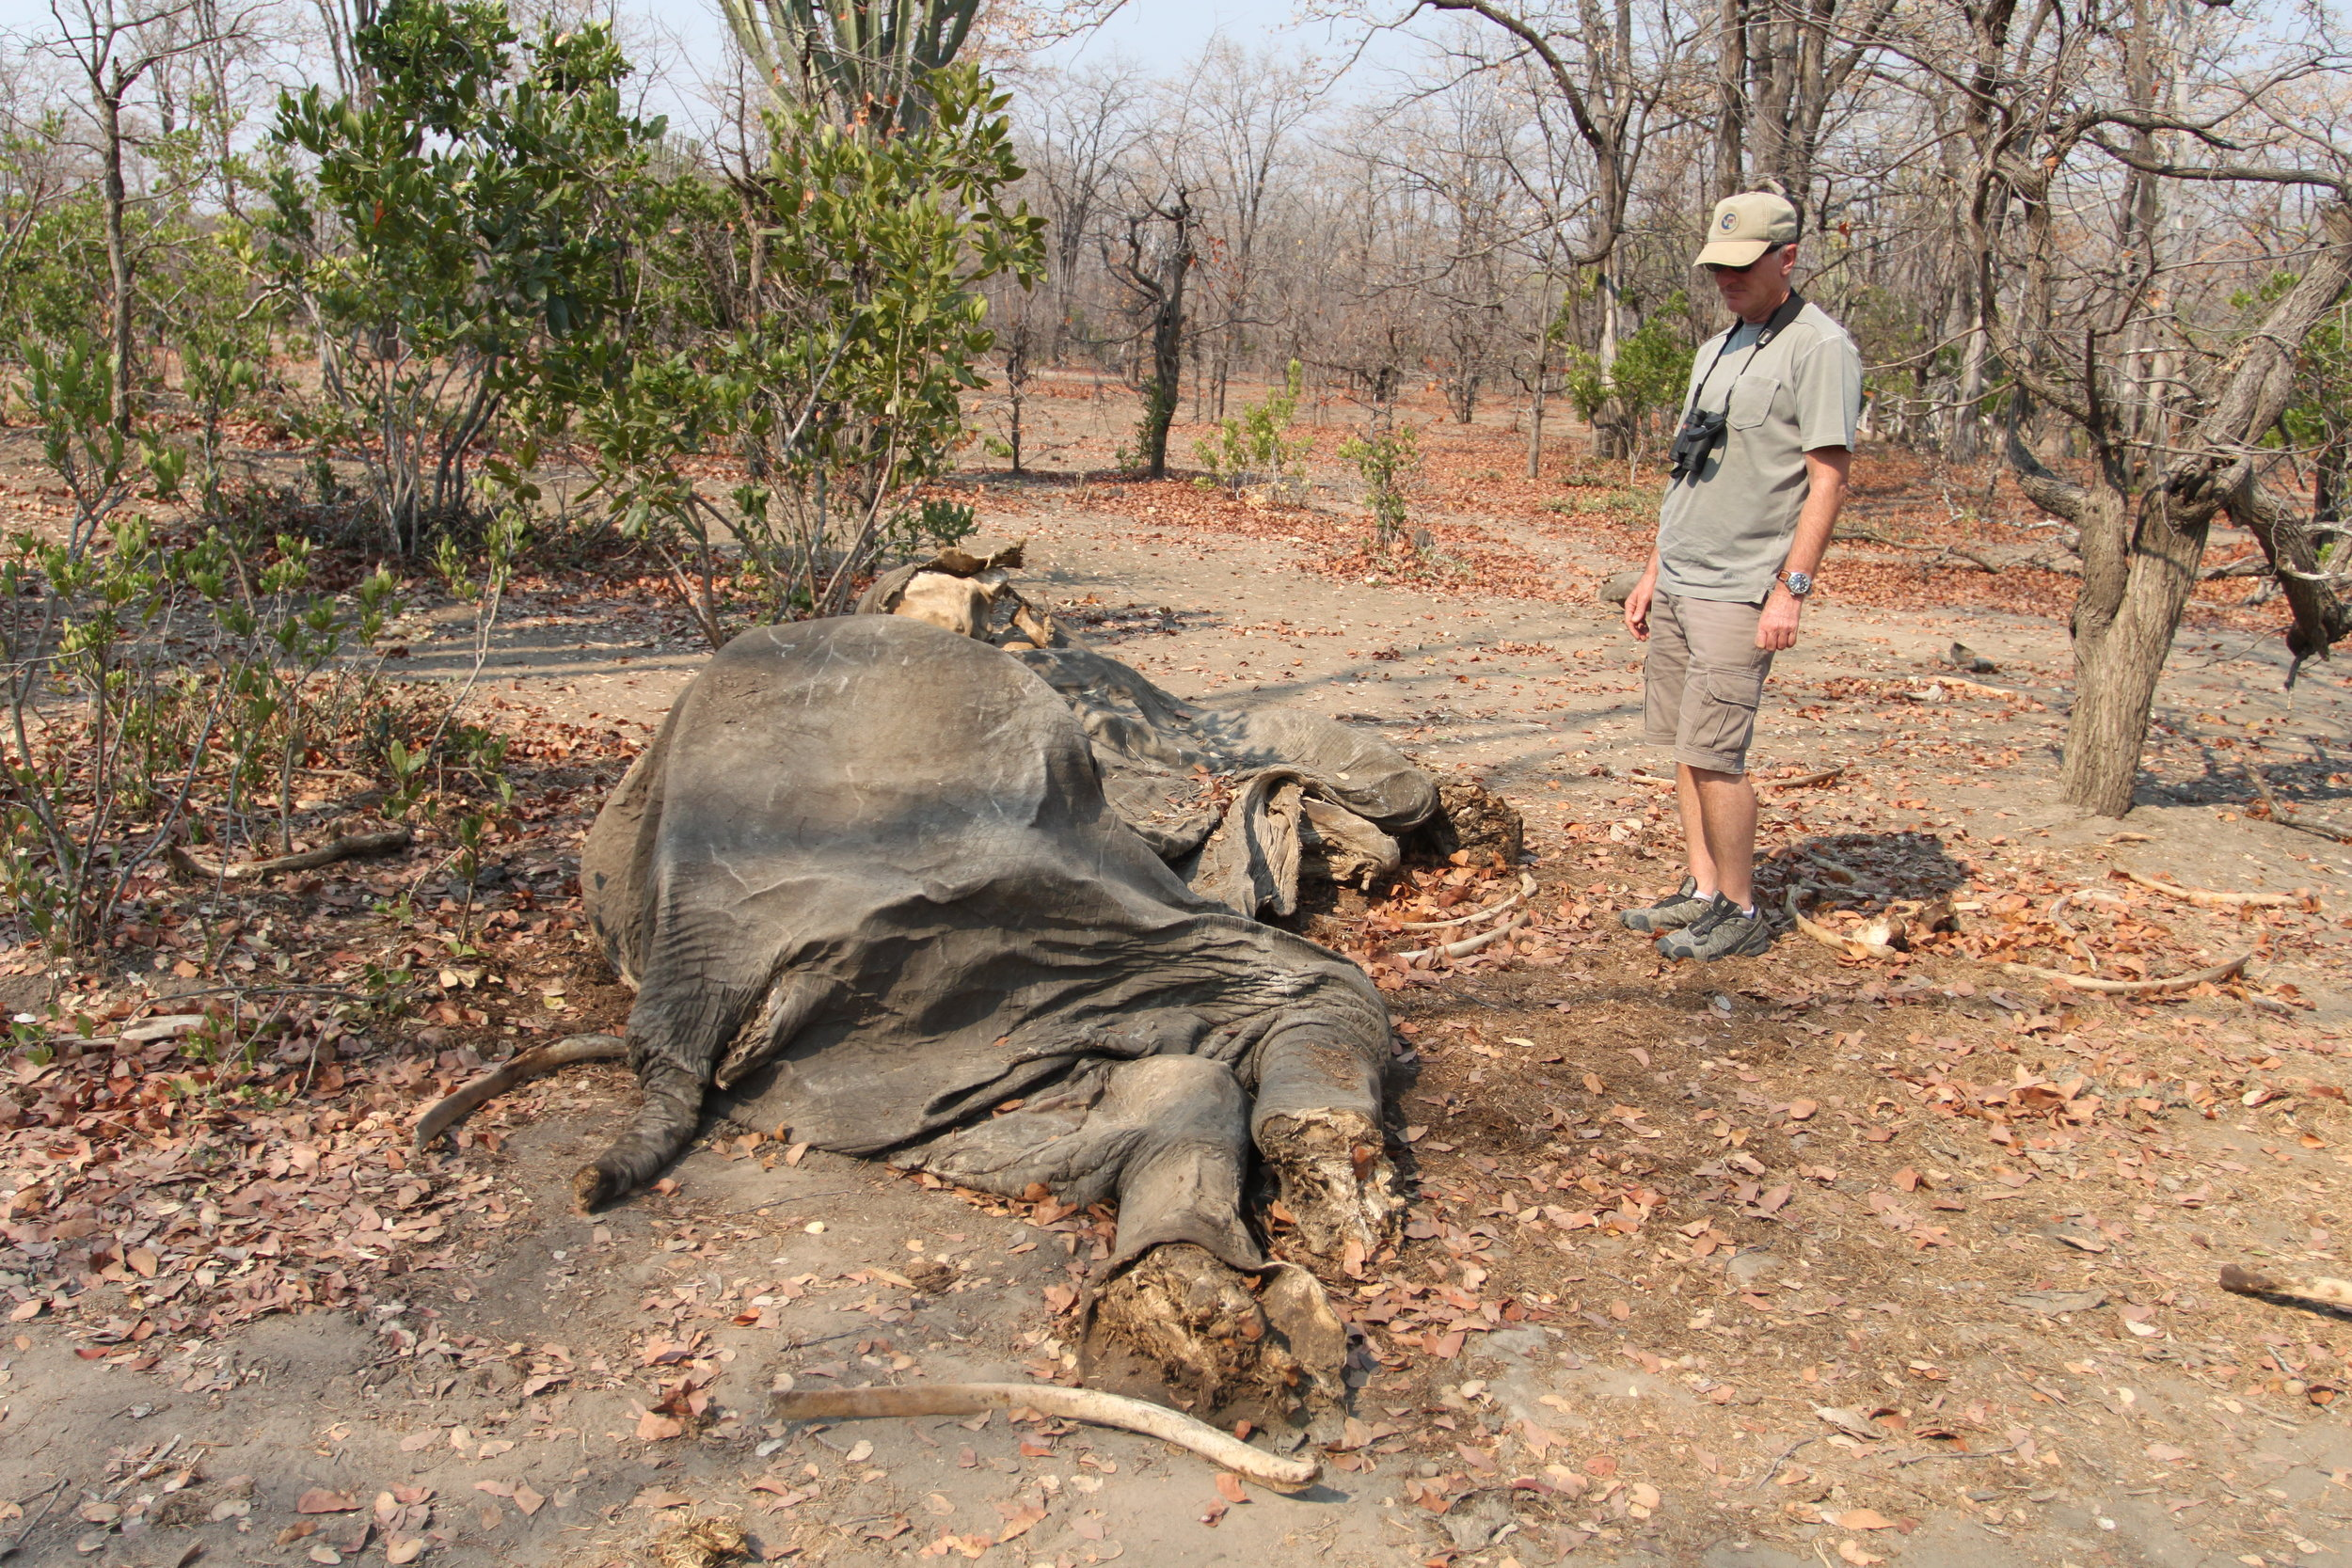 Otto Werdmuller Von Elgg, co-founder of UDS, inspects the remains of an elephant poached in Liwonde National Park.